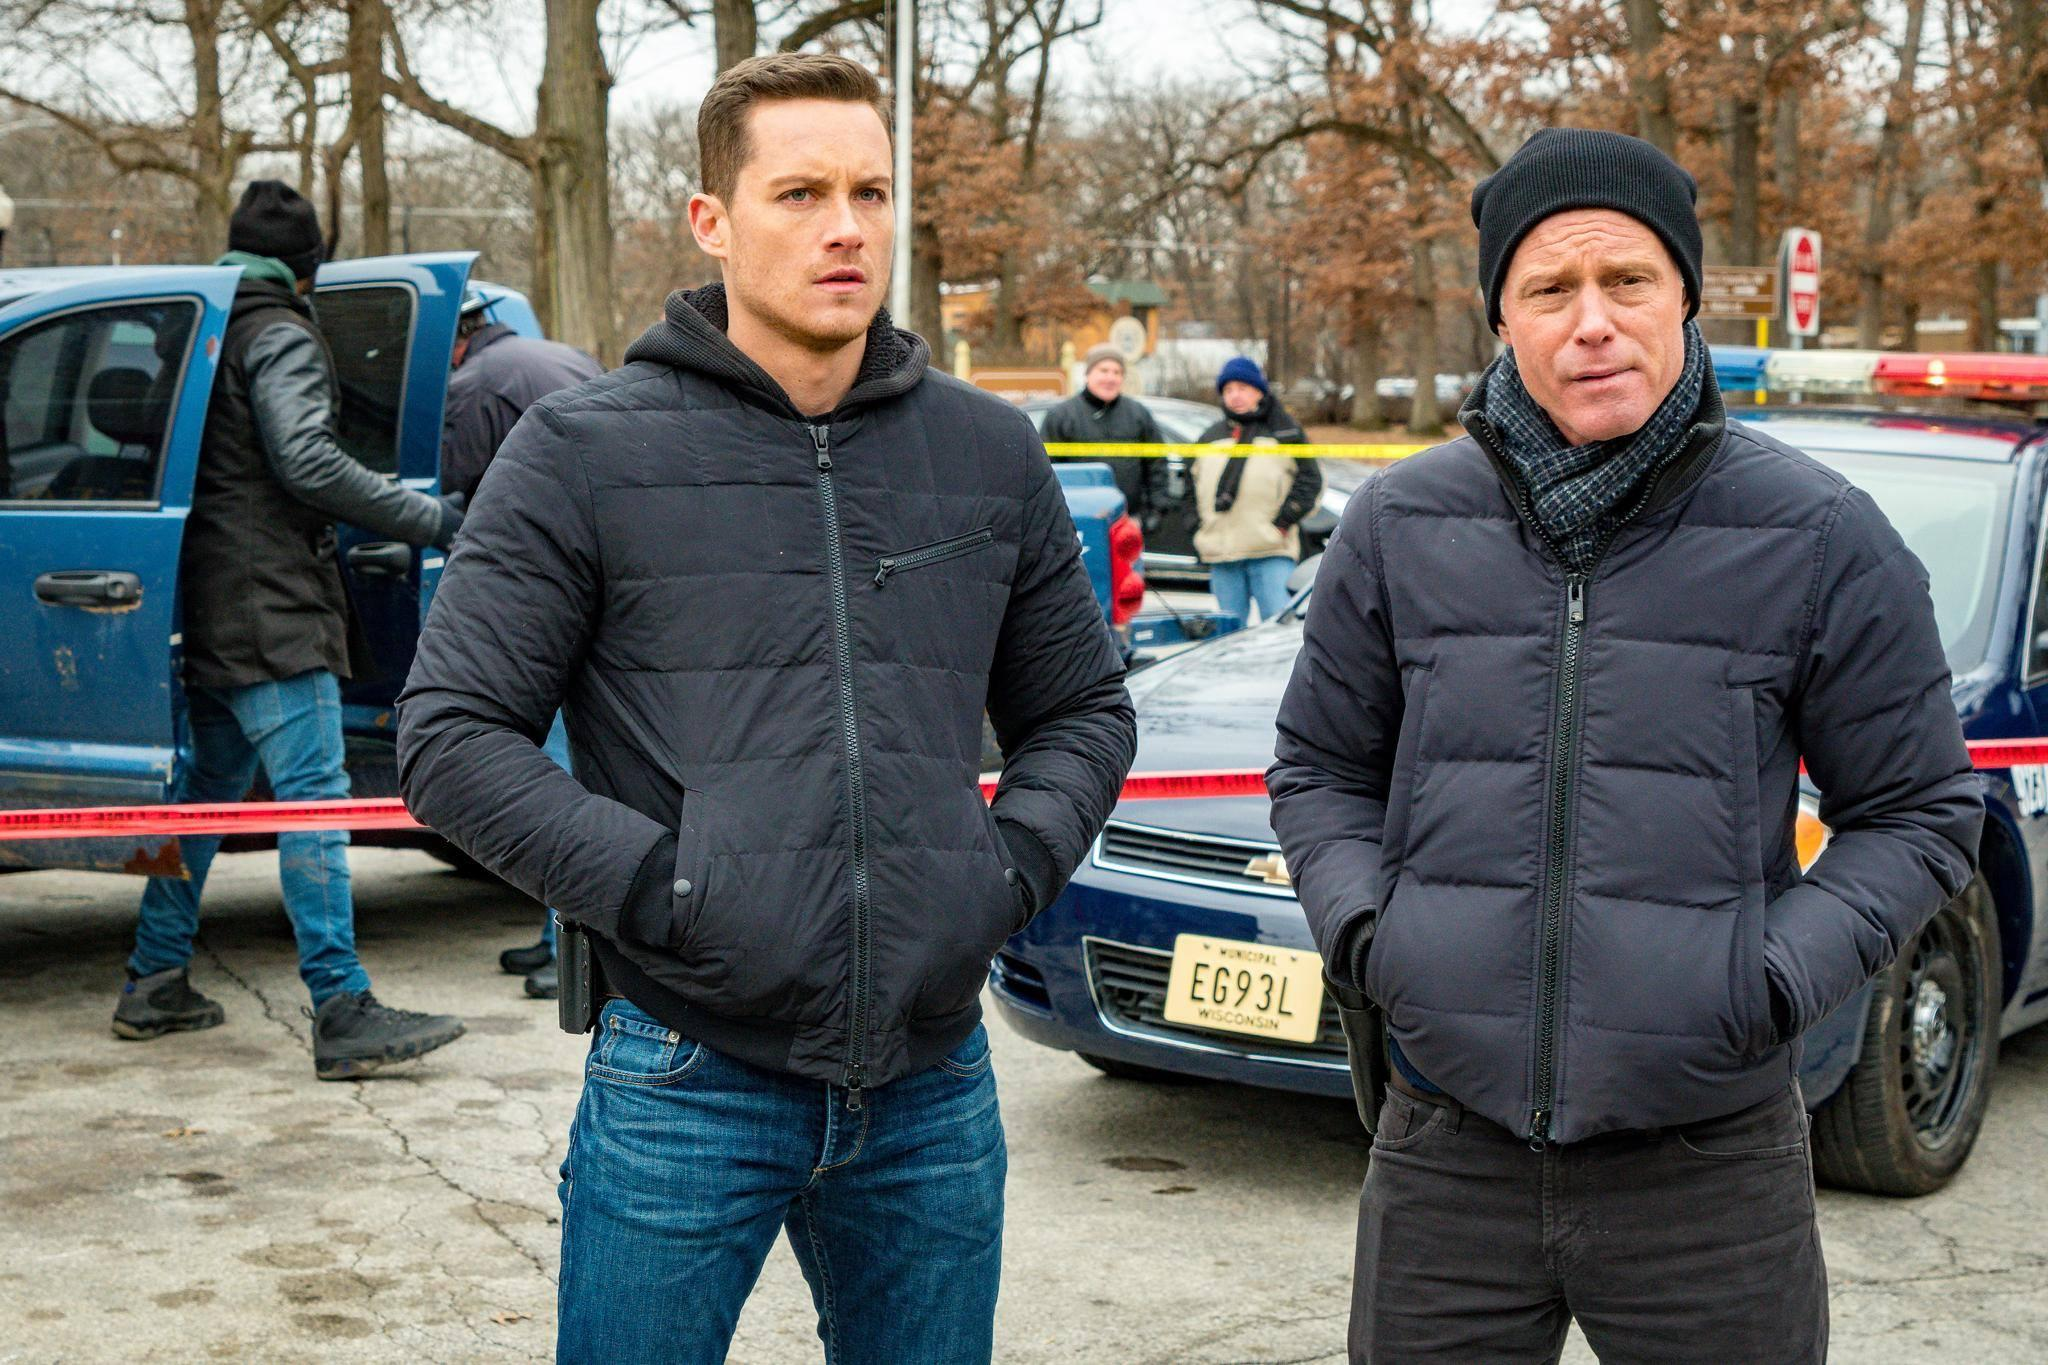 Chicago PD Season 6 Episode 19 might kill off a major character